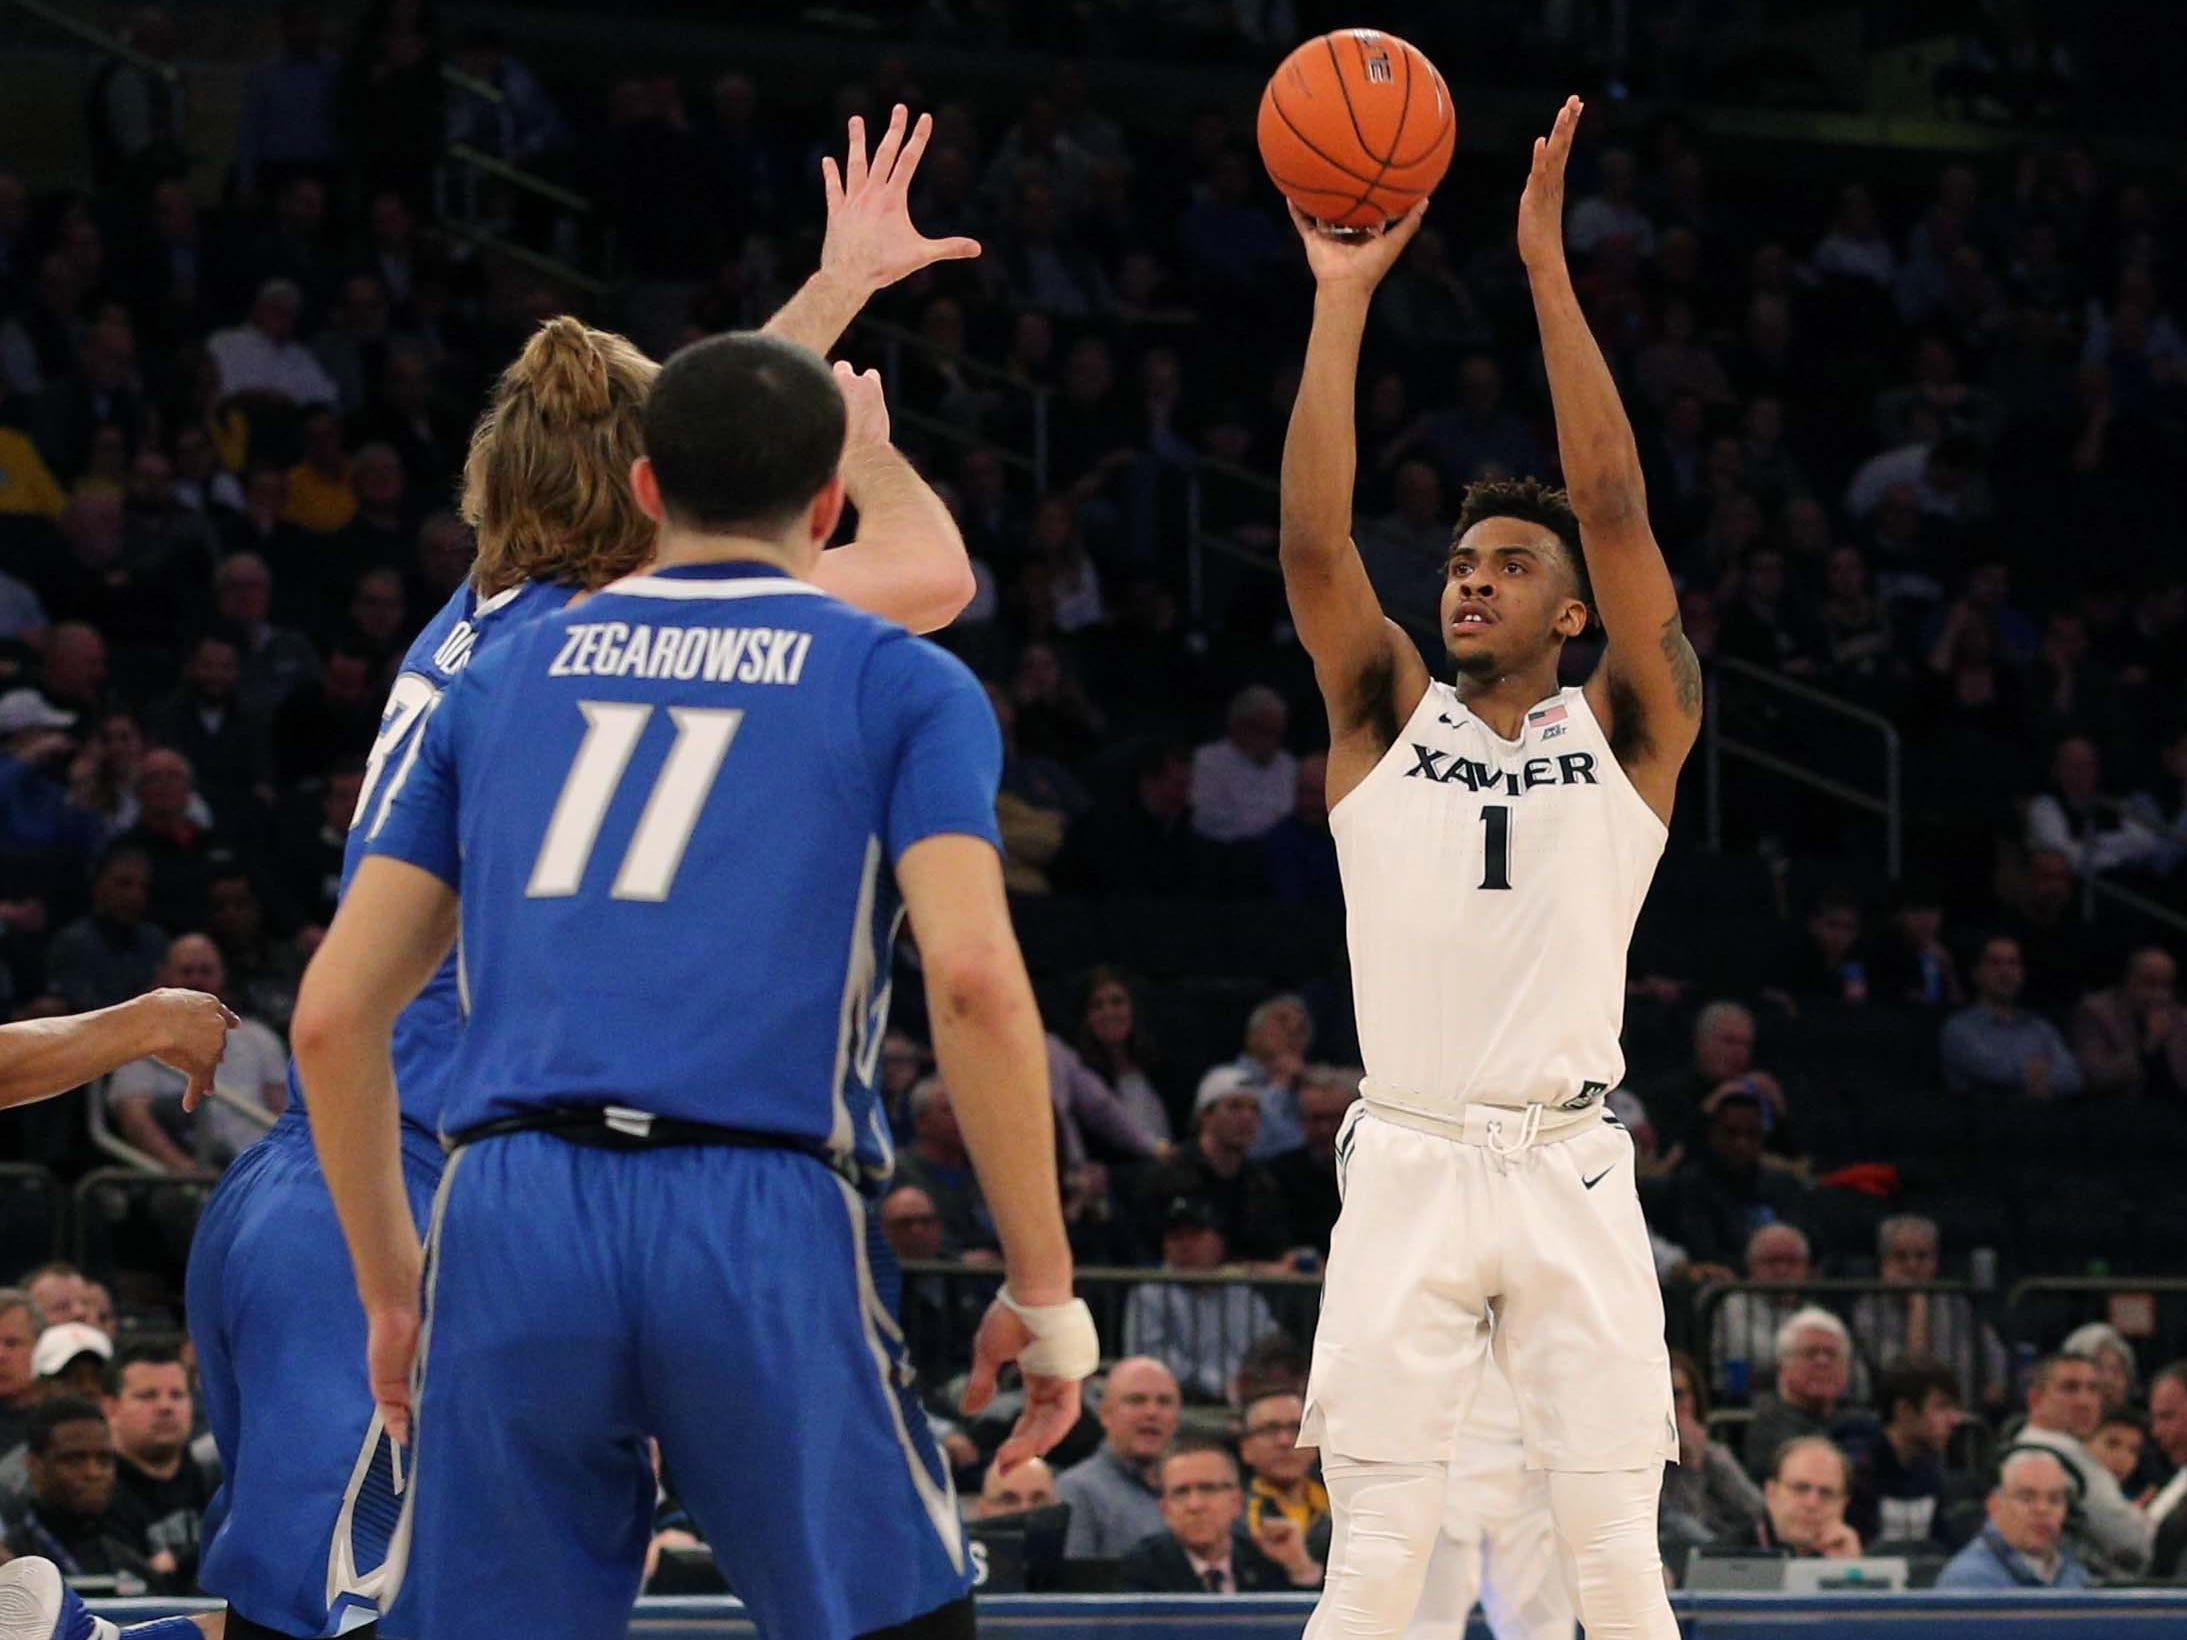 Xavier Musketeers guard Paul Scruggs (1) shoots a three point shot against the Creighton Bluejays during the first half of a quarterfinal game of the Big East conference tournament at Madison Square Garden.